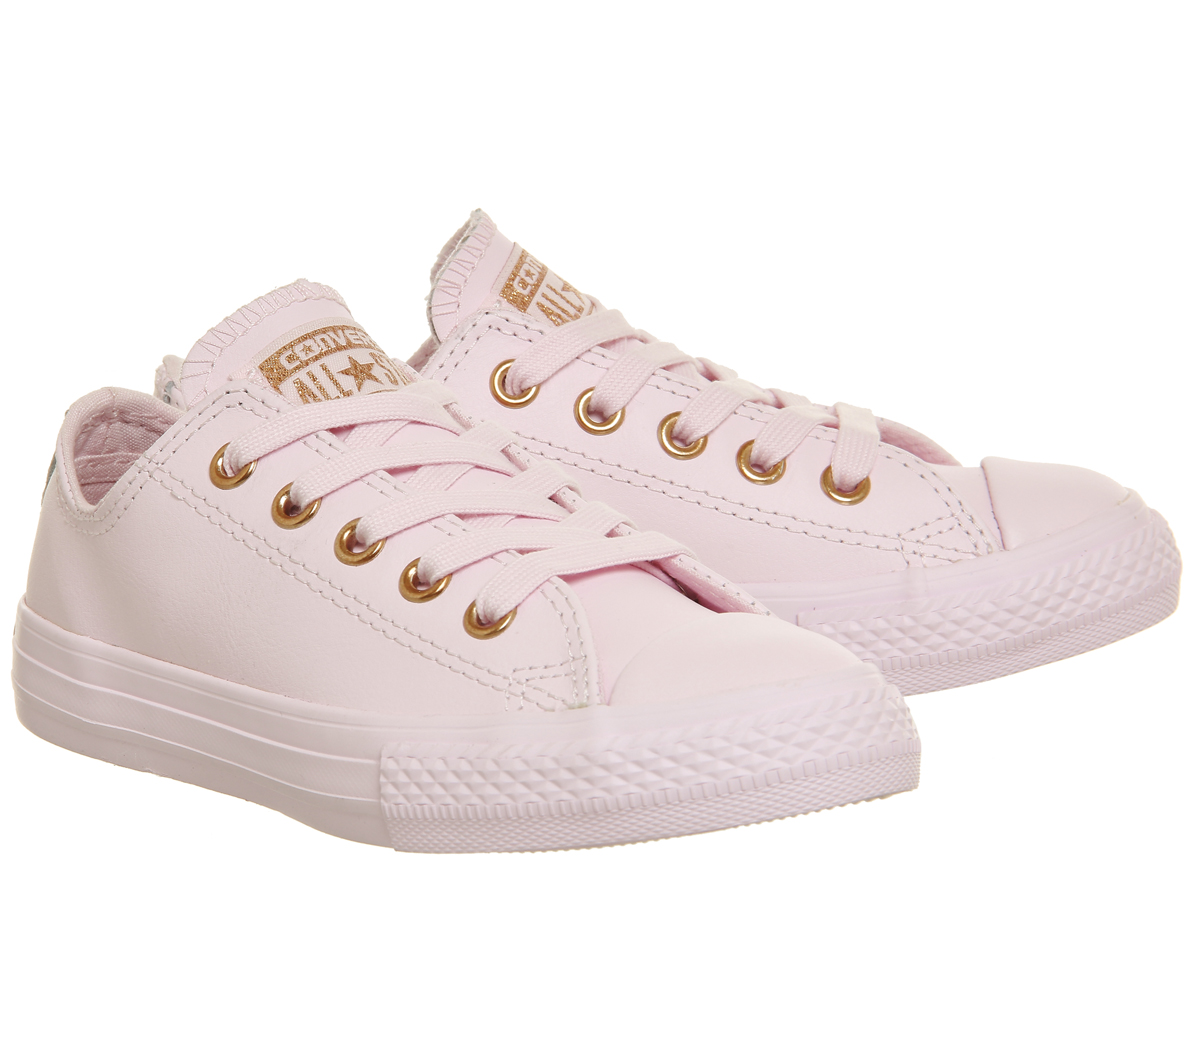 3b3659ca9996 Sentinel Kids Converse All Star Ox Leather Kids Artic Pink Rose Gold Kids